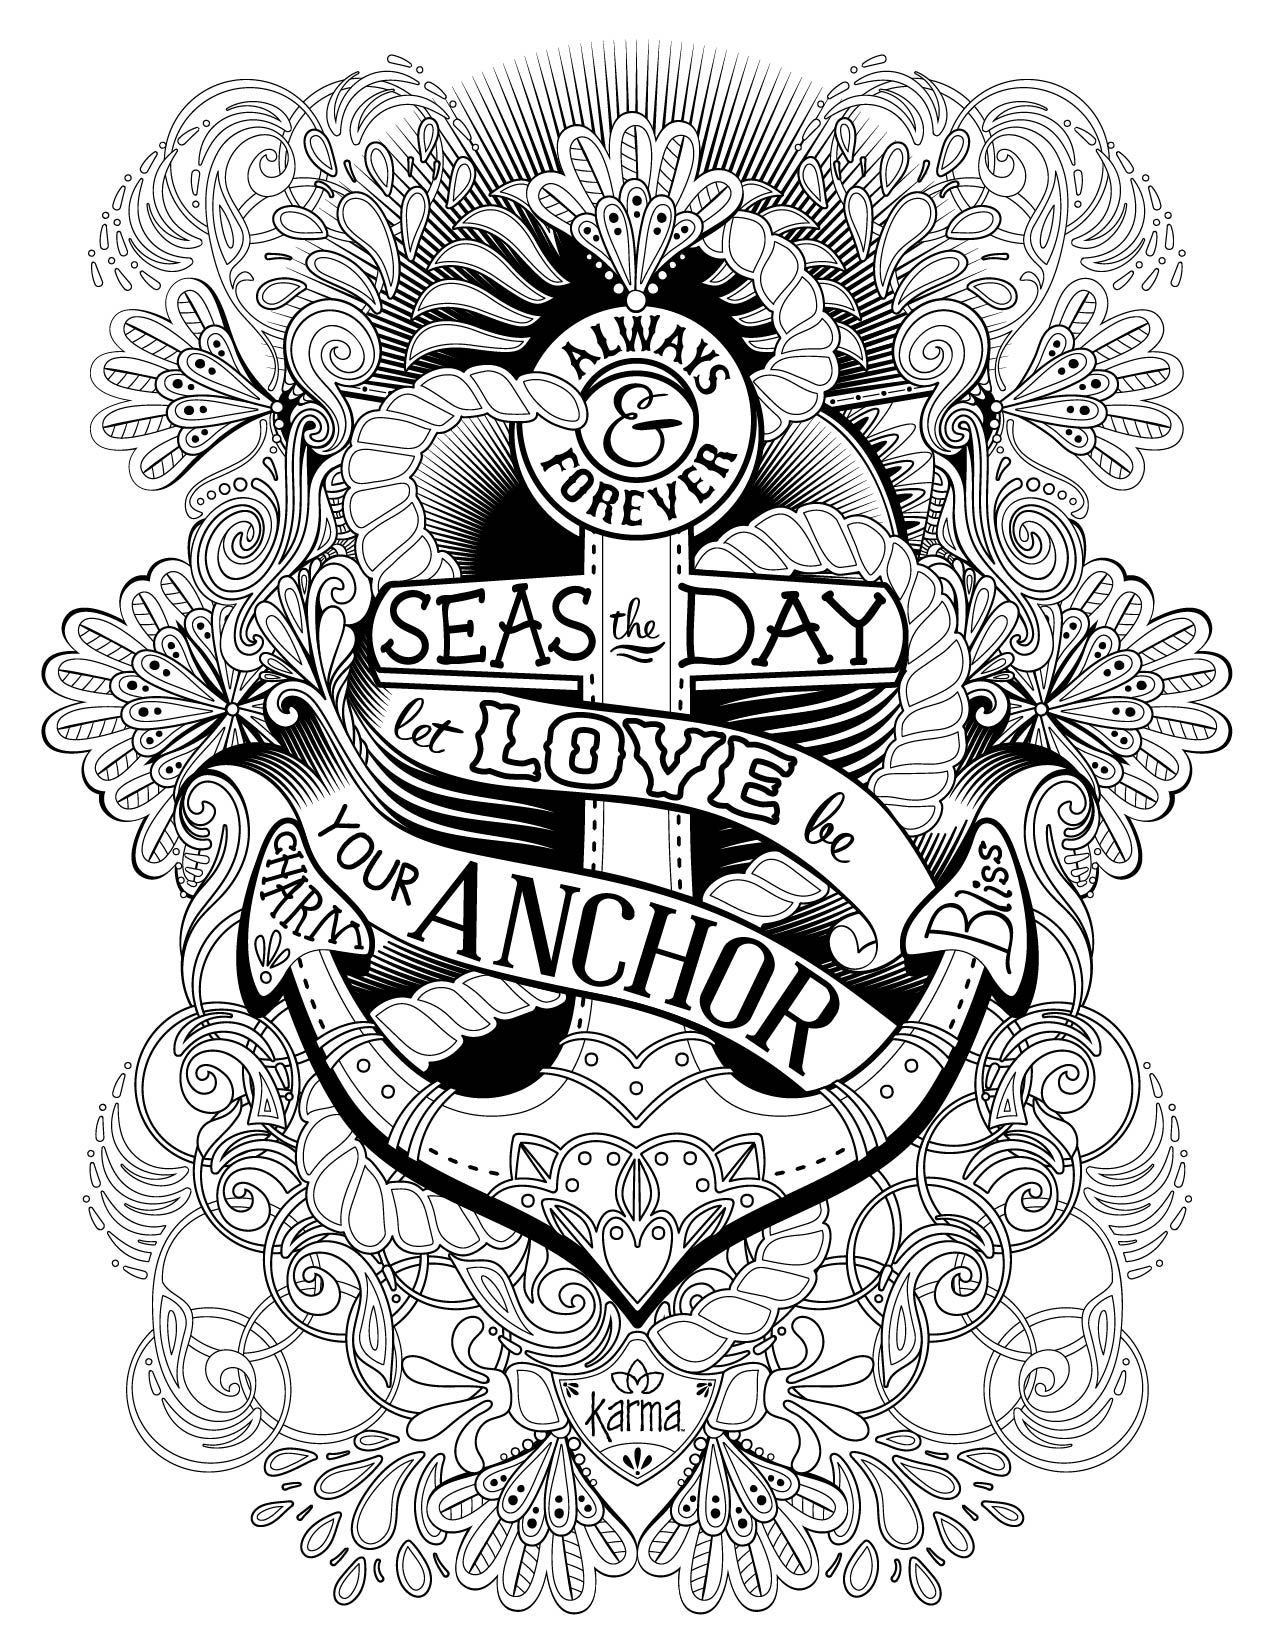 Anchor! free and printable coloring page by karma gifts adult Anchor Coloring Pages Free Read Anchor Adult Coloring Pages Free Colorful Anchor